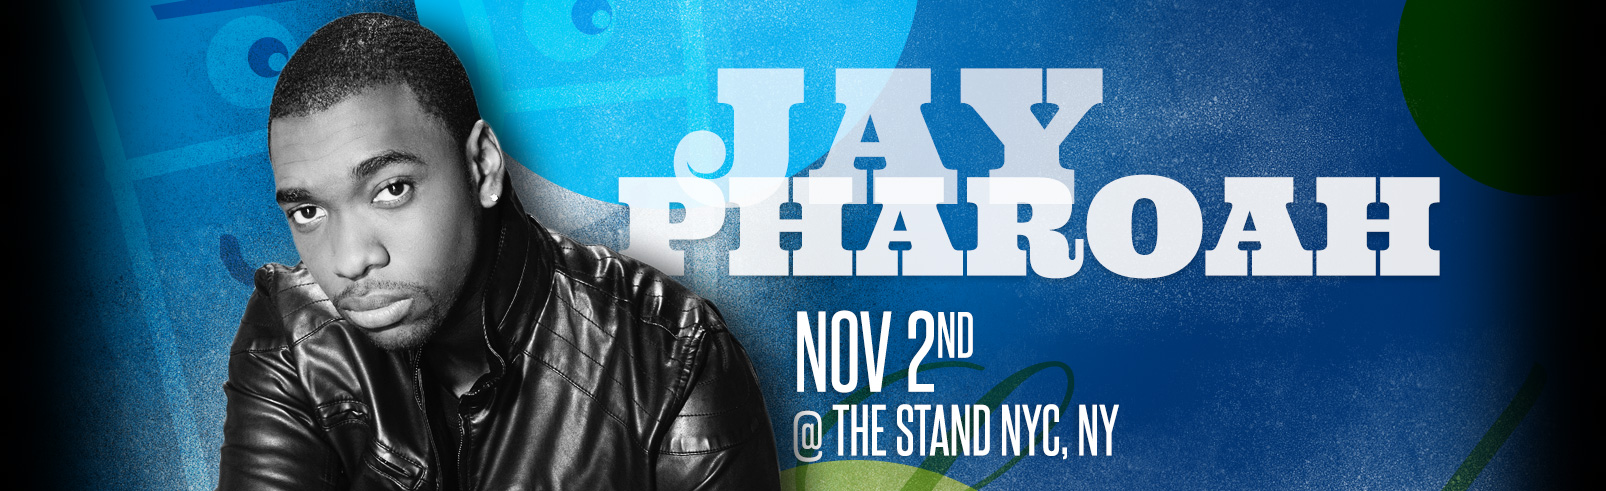 Jay Pharoah @ The Stand NYC